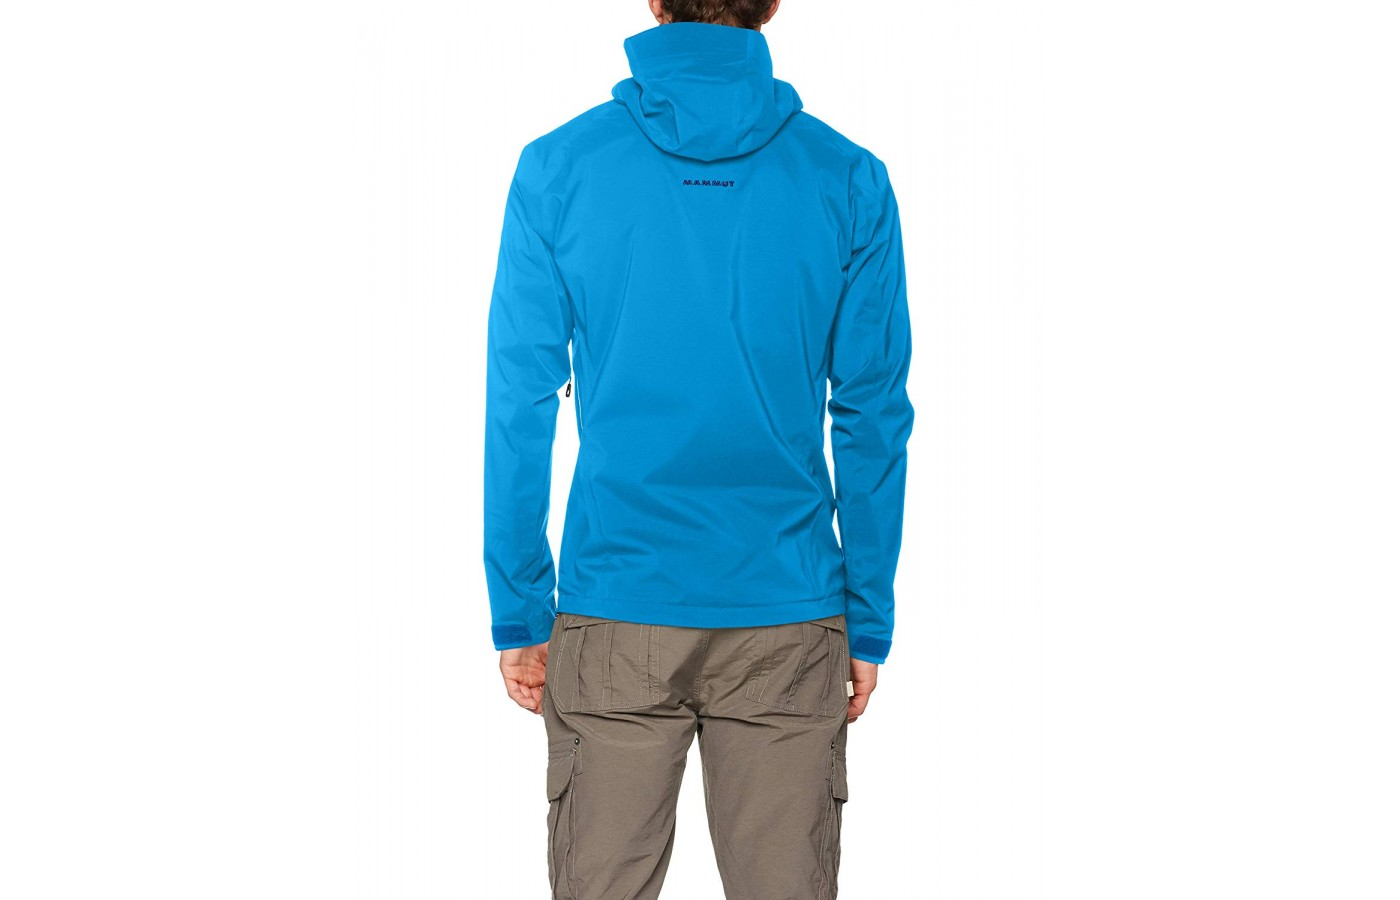 The components and materials that make up this product are designed with the idea in mind that being dry while out in the rain or wind is a form of comfort.